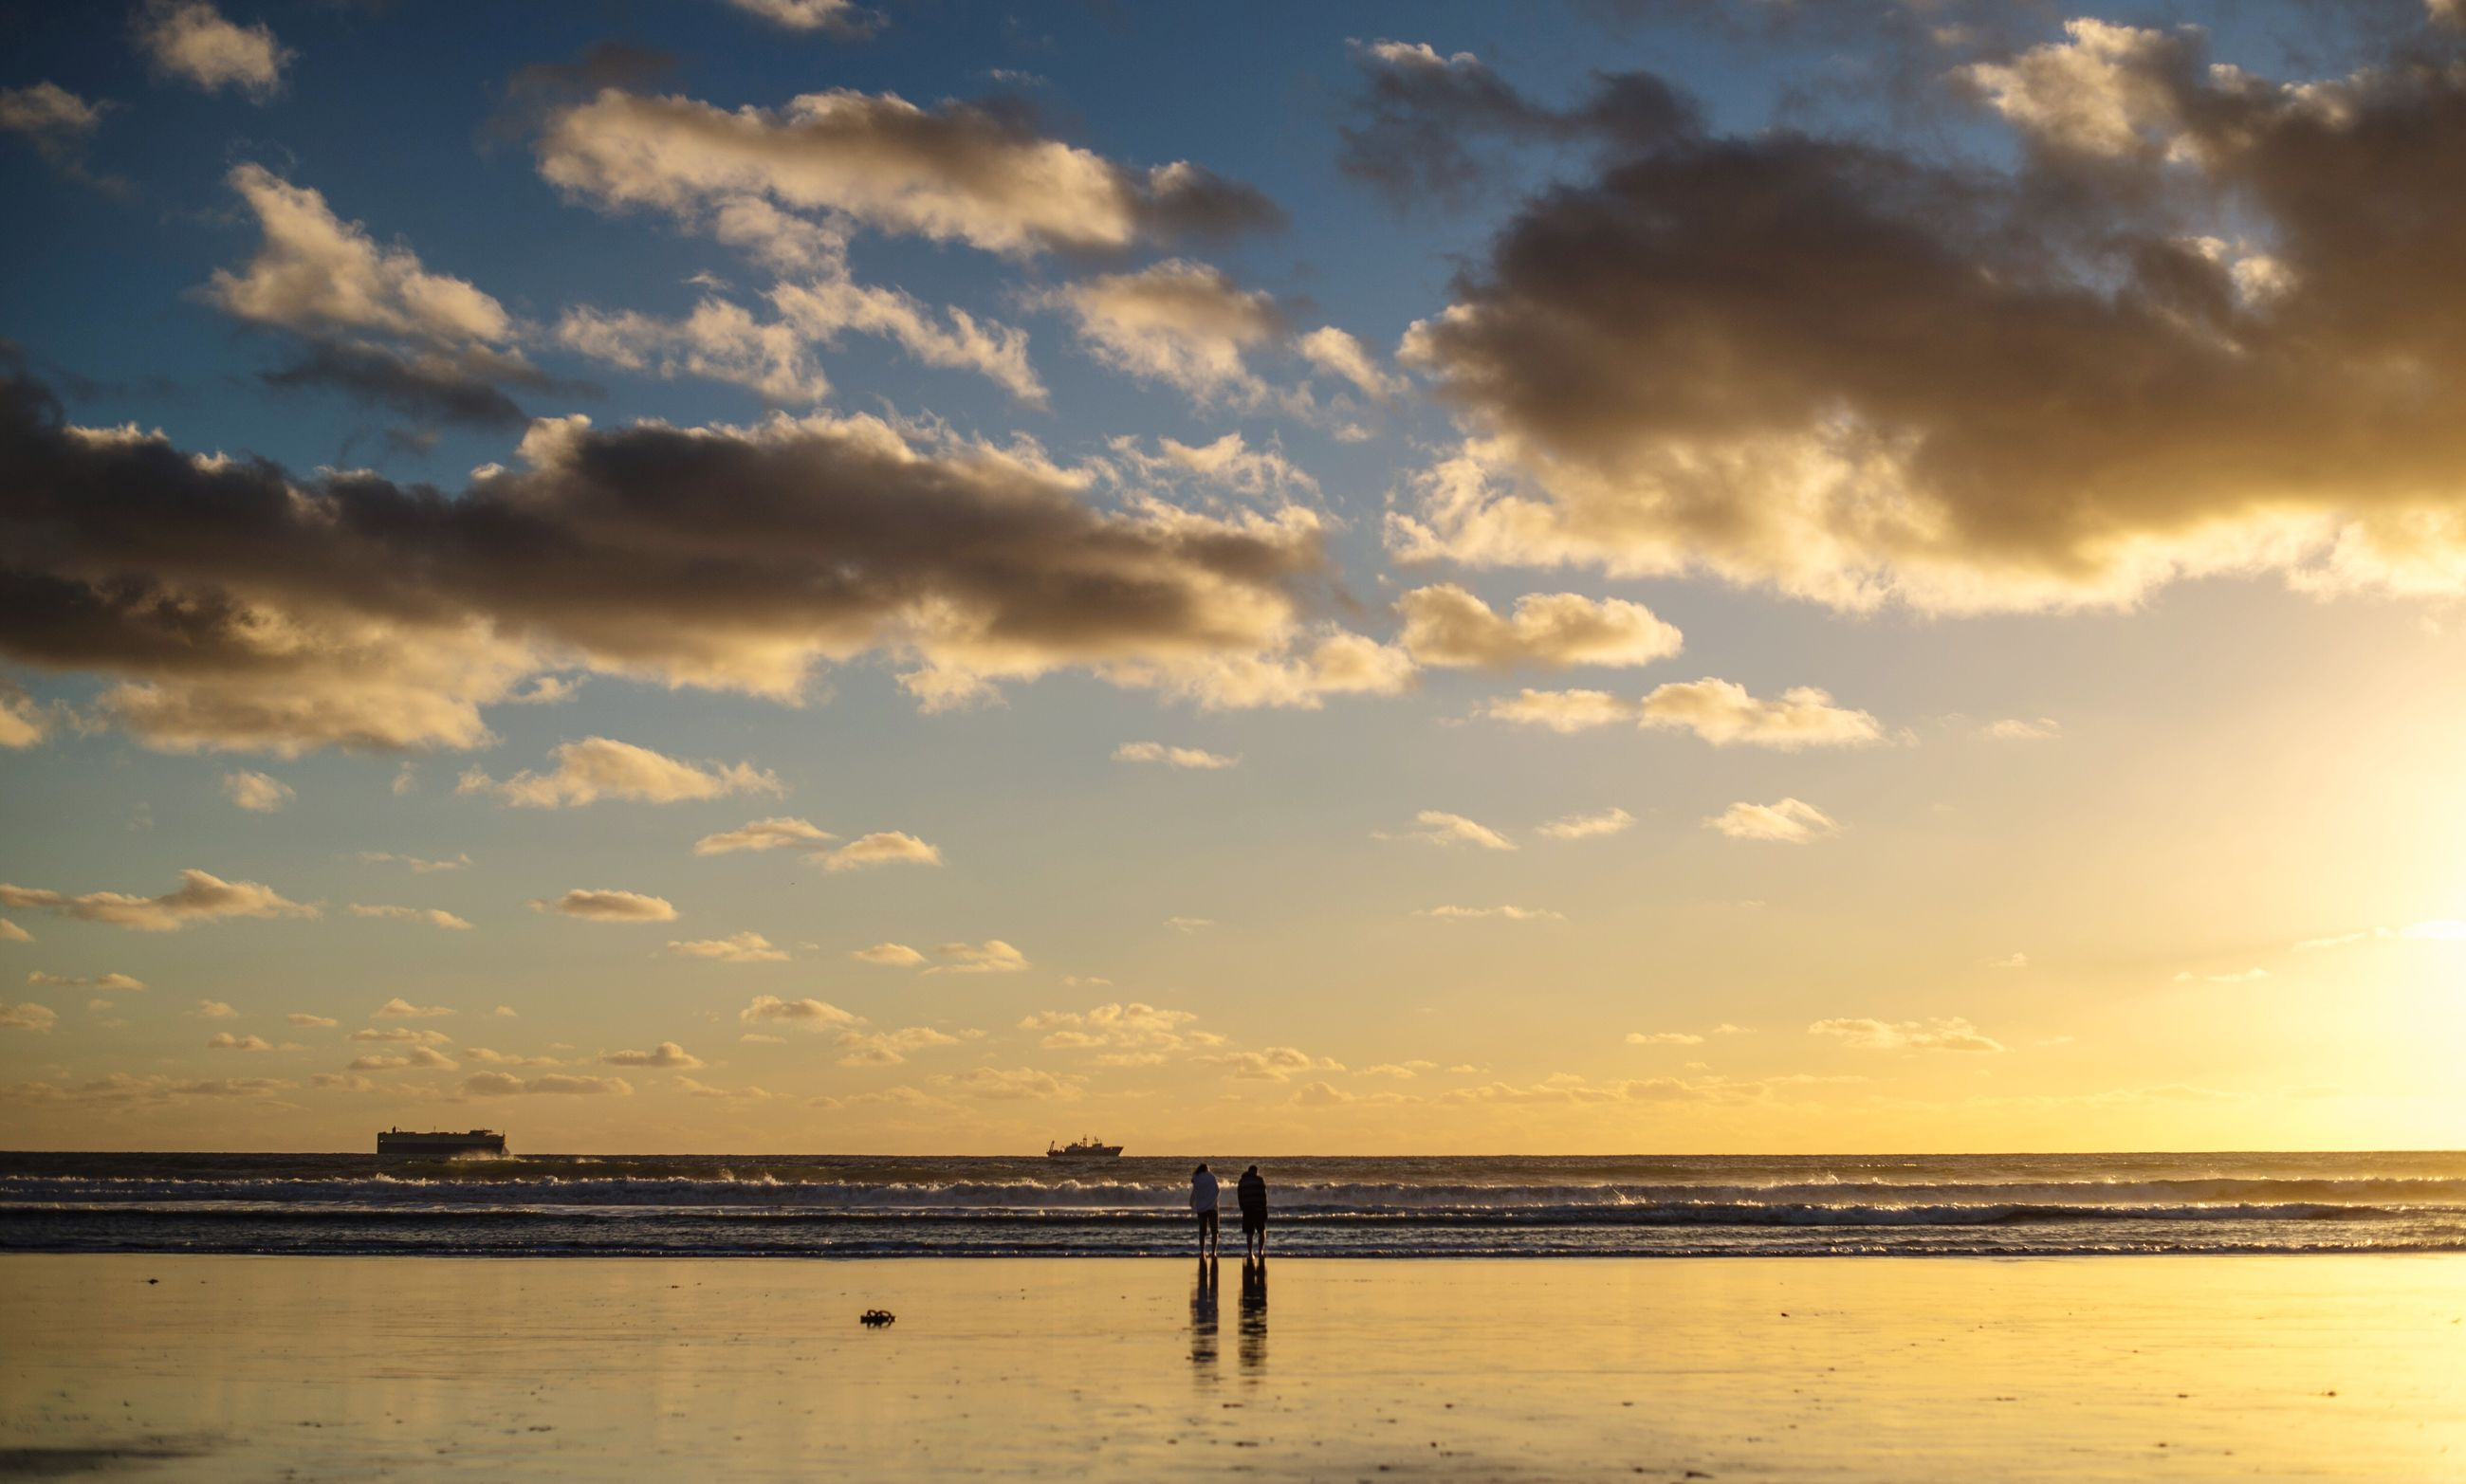 sea, horizon over water, water, beach, sky, scenics, tranquil scene, tranquility, beauty in nature, sunset, shore, nature, idyllic, cloud - sky, sand, cloud, silhouette, vacations, outdoors, incidental people